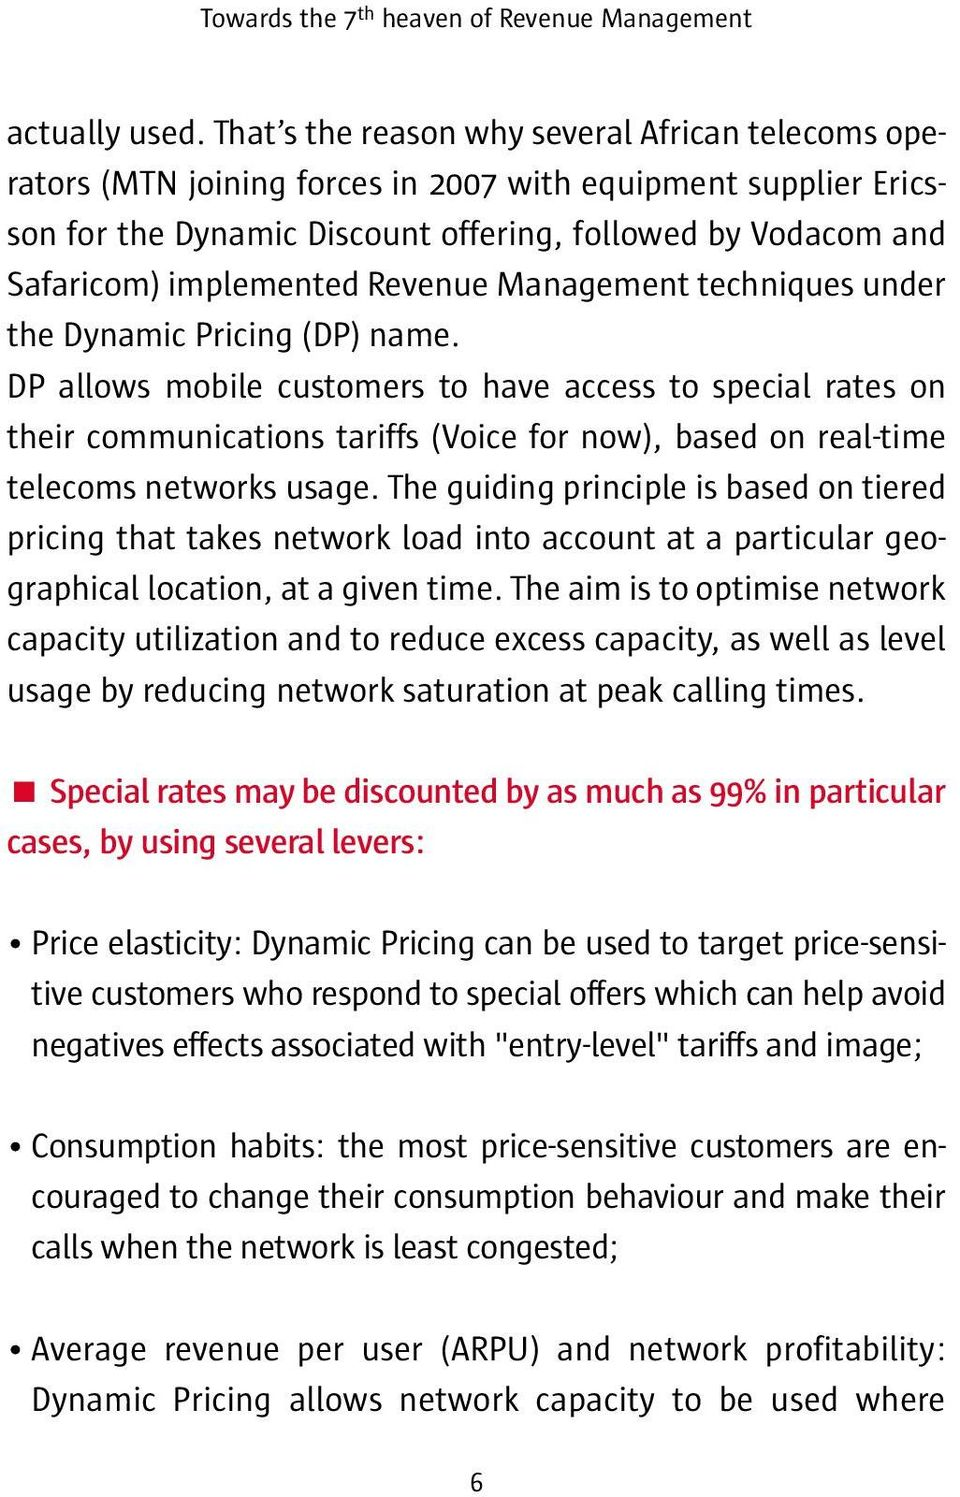 Revenue Management techniques under the Dynamic Pricing (DP) name.